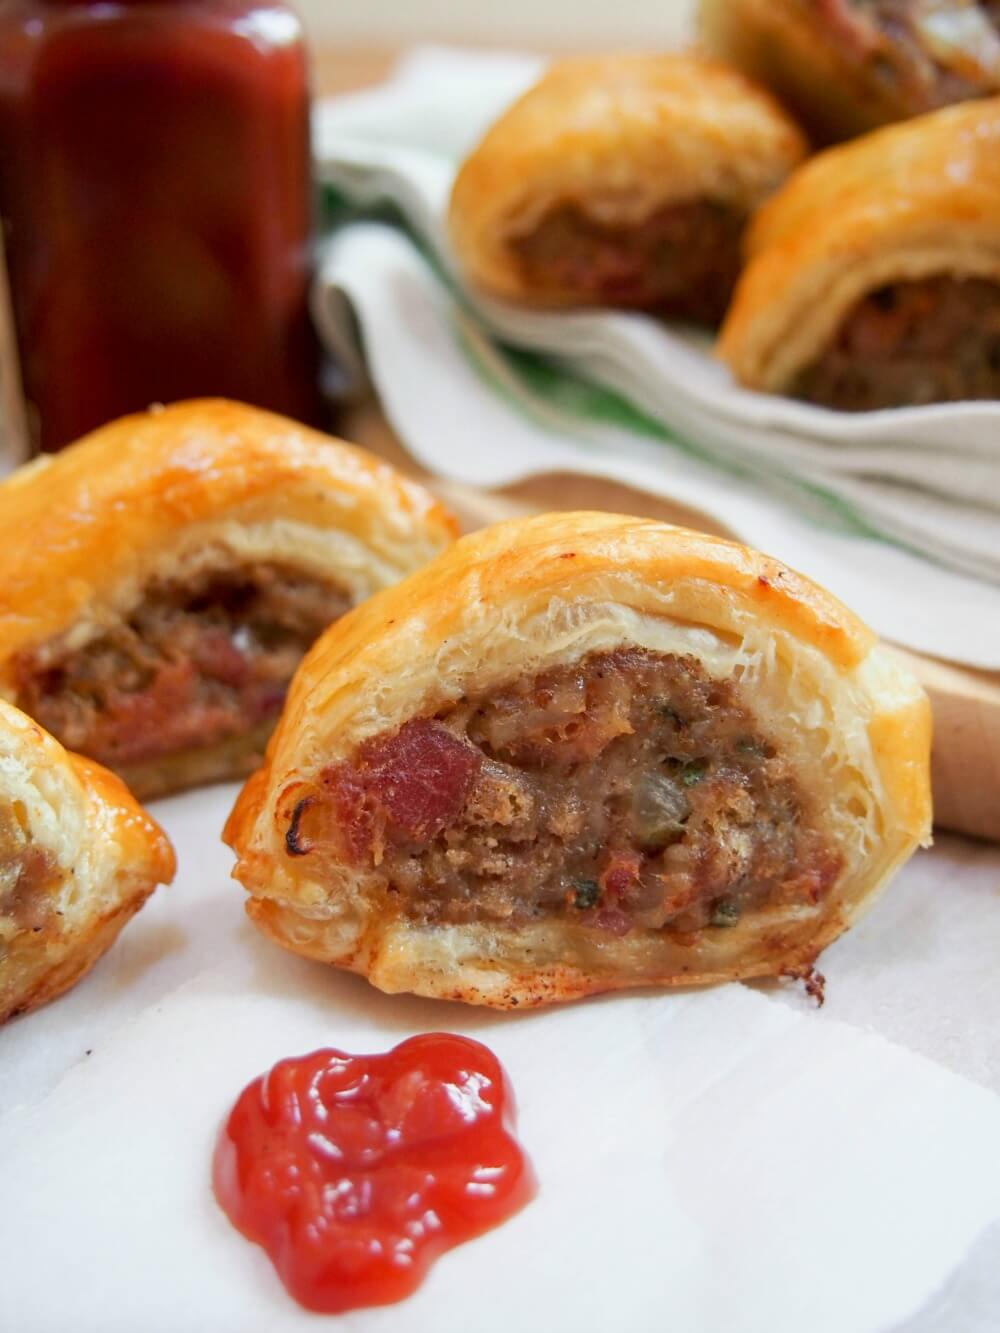 sausage rolls - a tasty British snack that's easy and perfect for entertaining